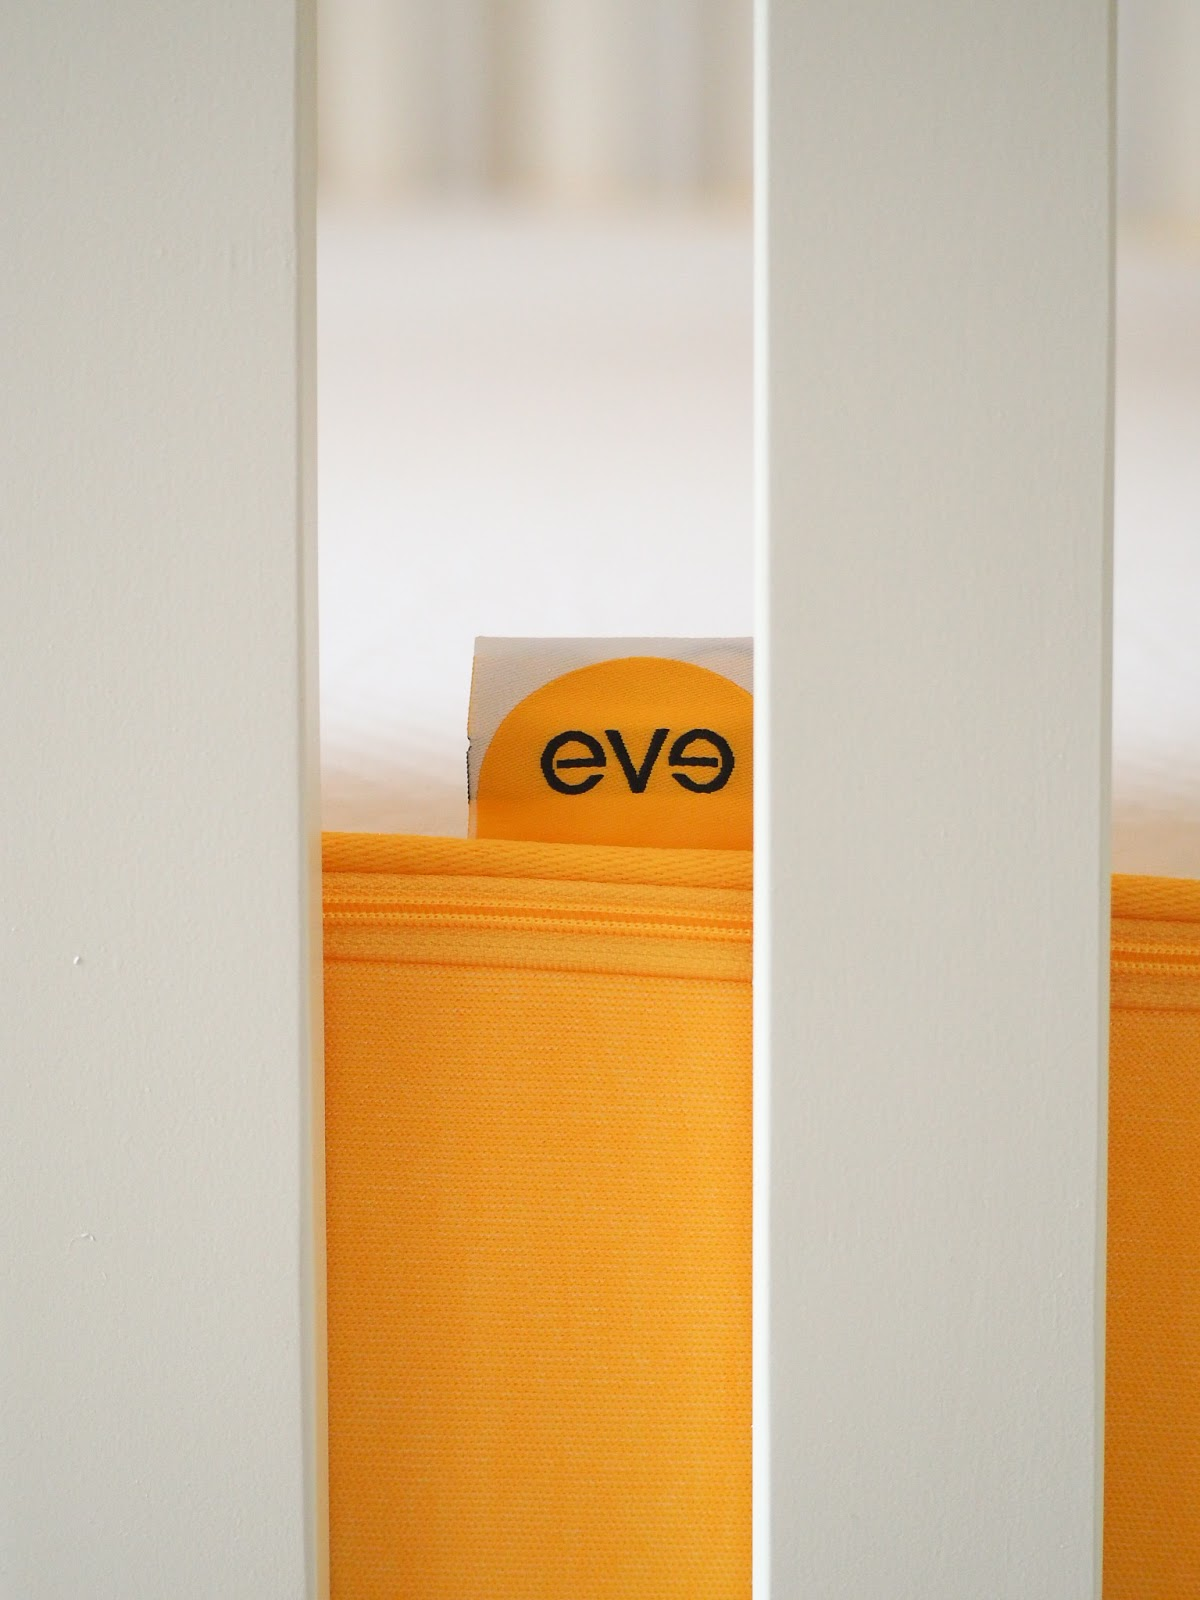 Eve Sleep Mattress: 100 Sleeps Later